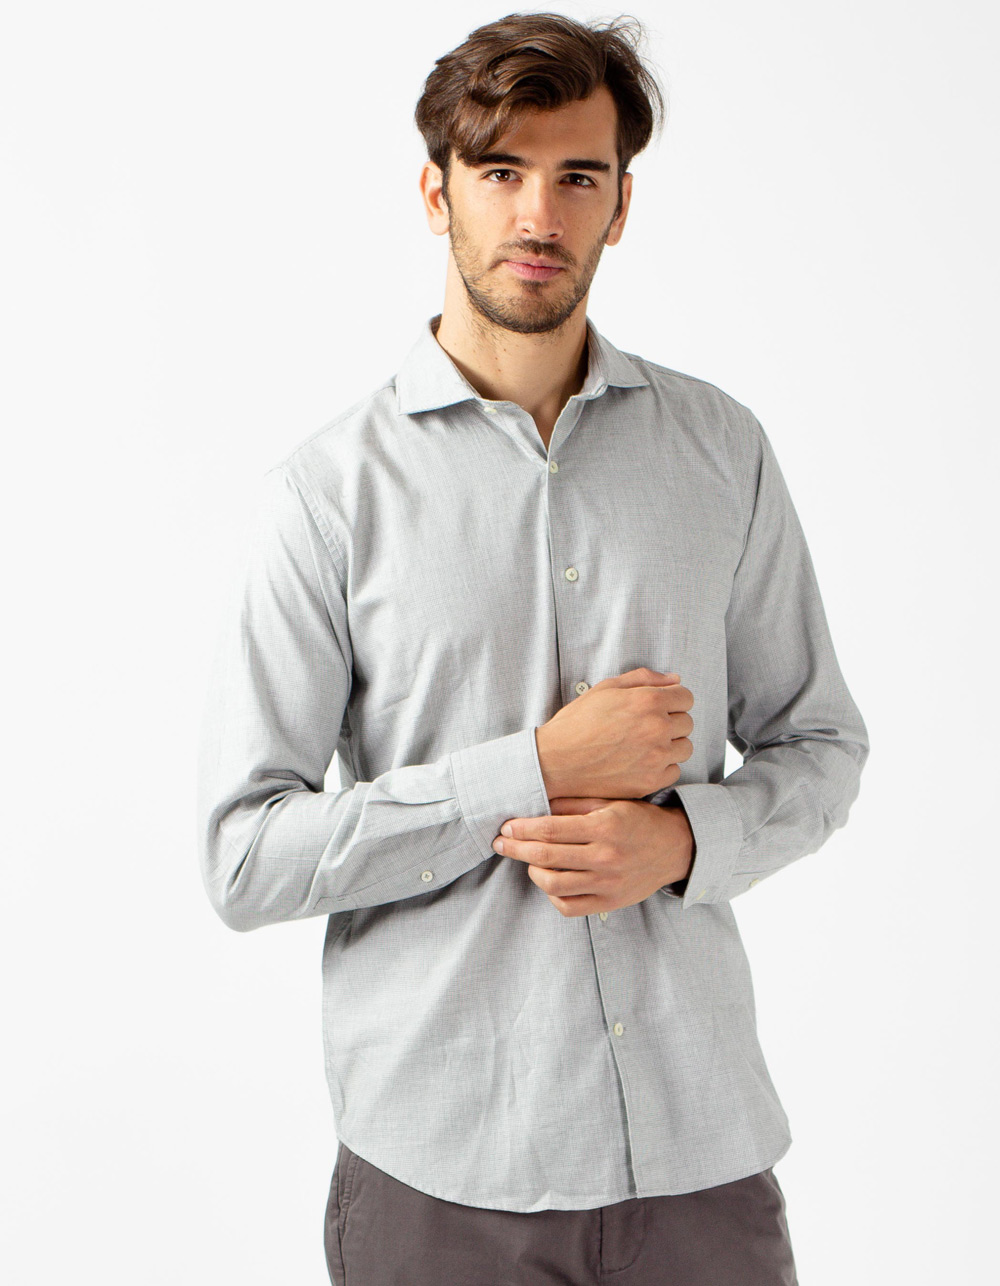 Grey Oxford shirt